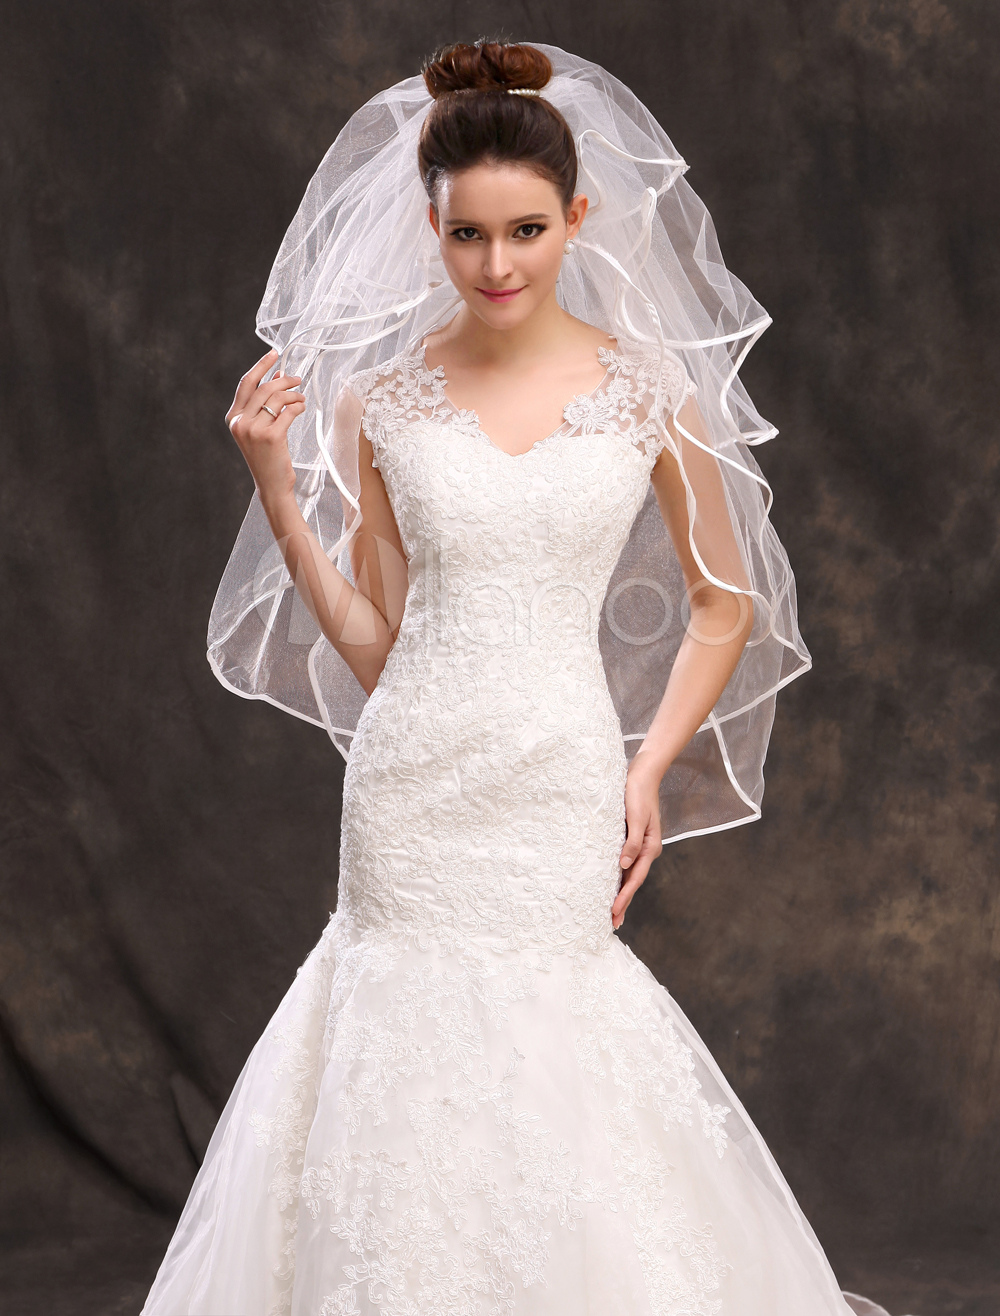 White Tulle Classic Four-Tier Bridal Wedding Elbow Veil with Comb